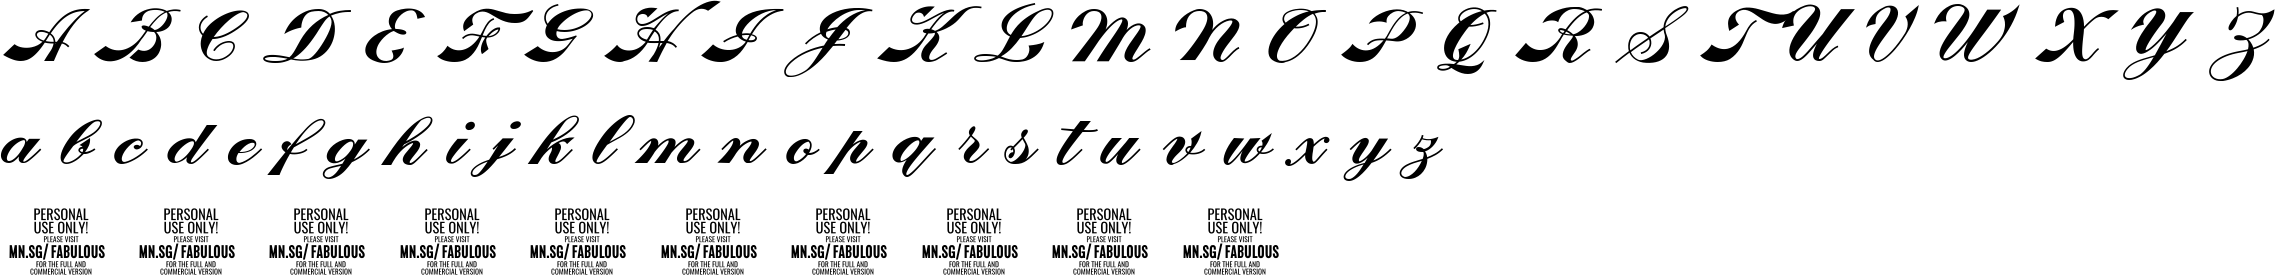 Fabulous Personal Use Character Map Image